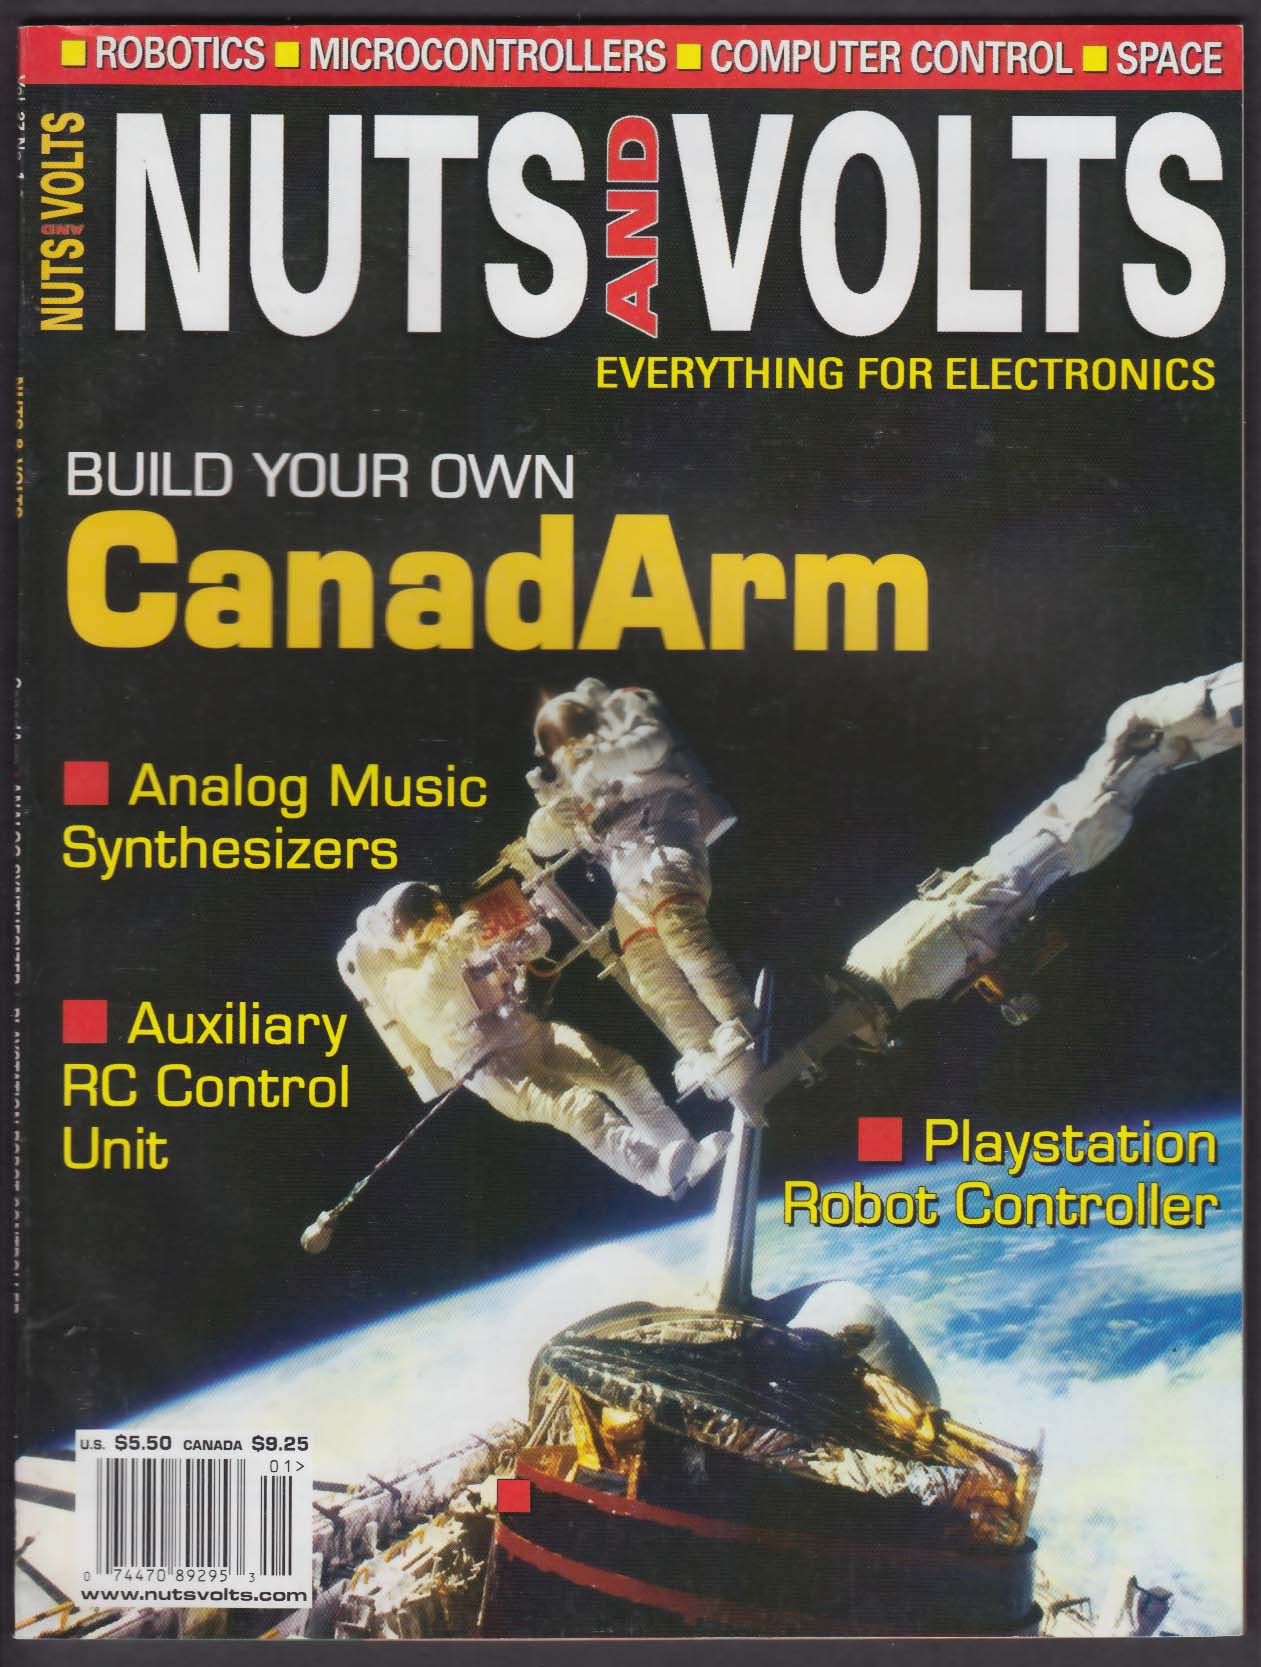 NUTS & VOLTS CanadArm Auxiliary RC Control Unit Analog Synthesizers 1 2006